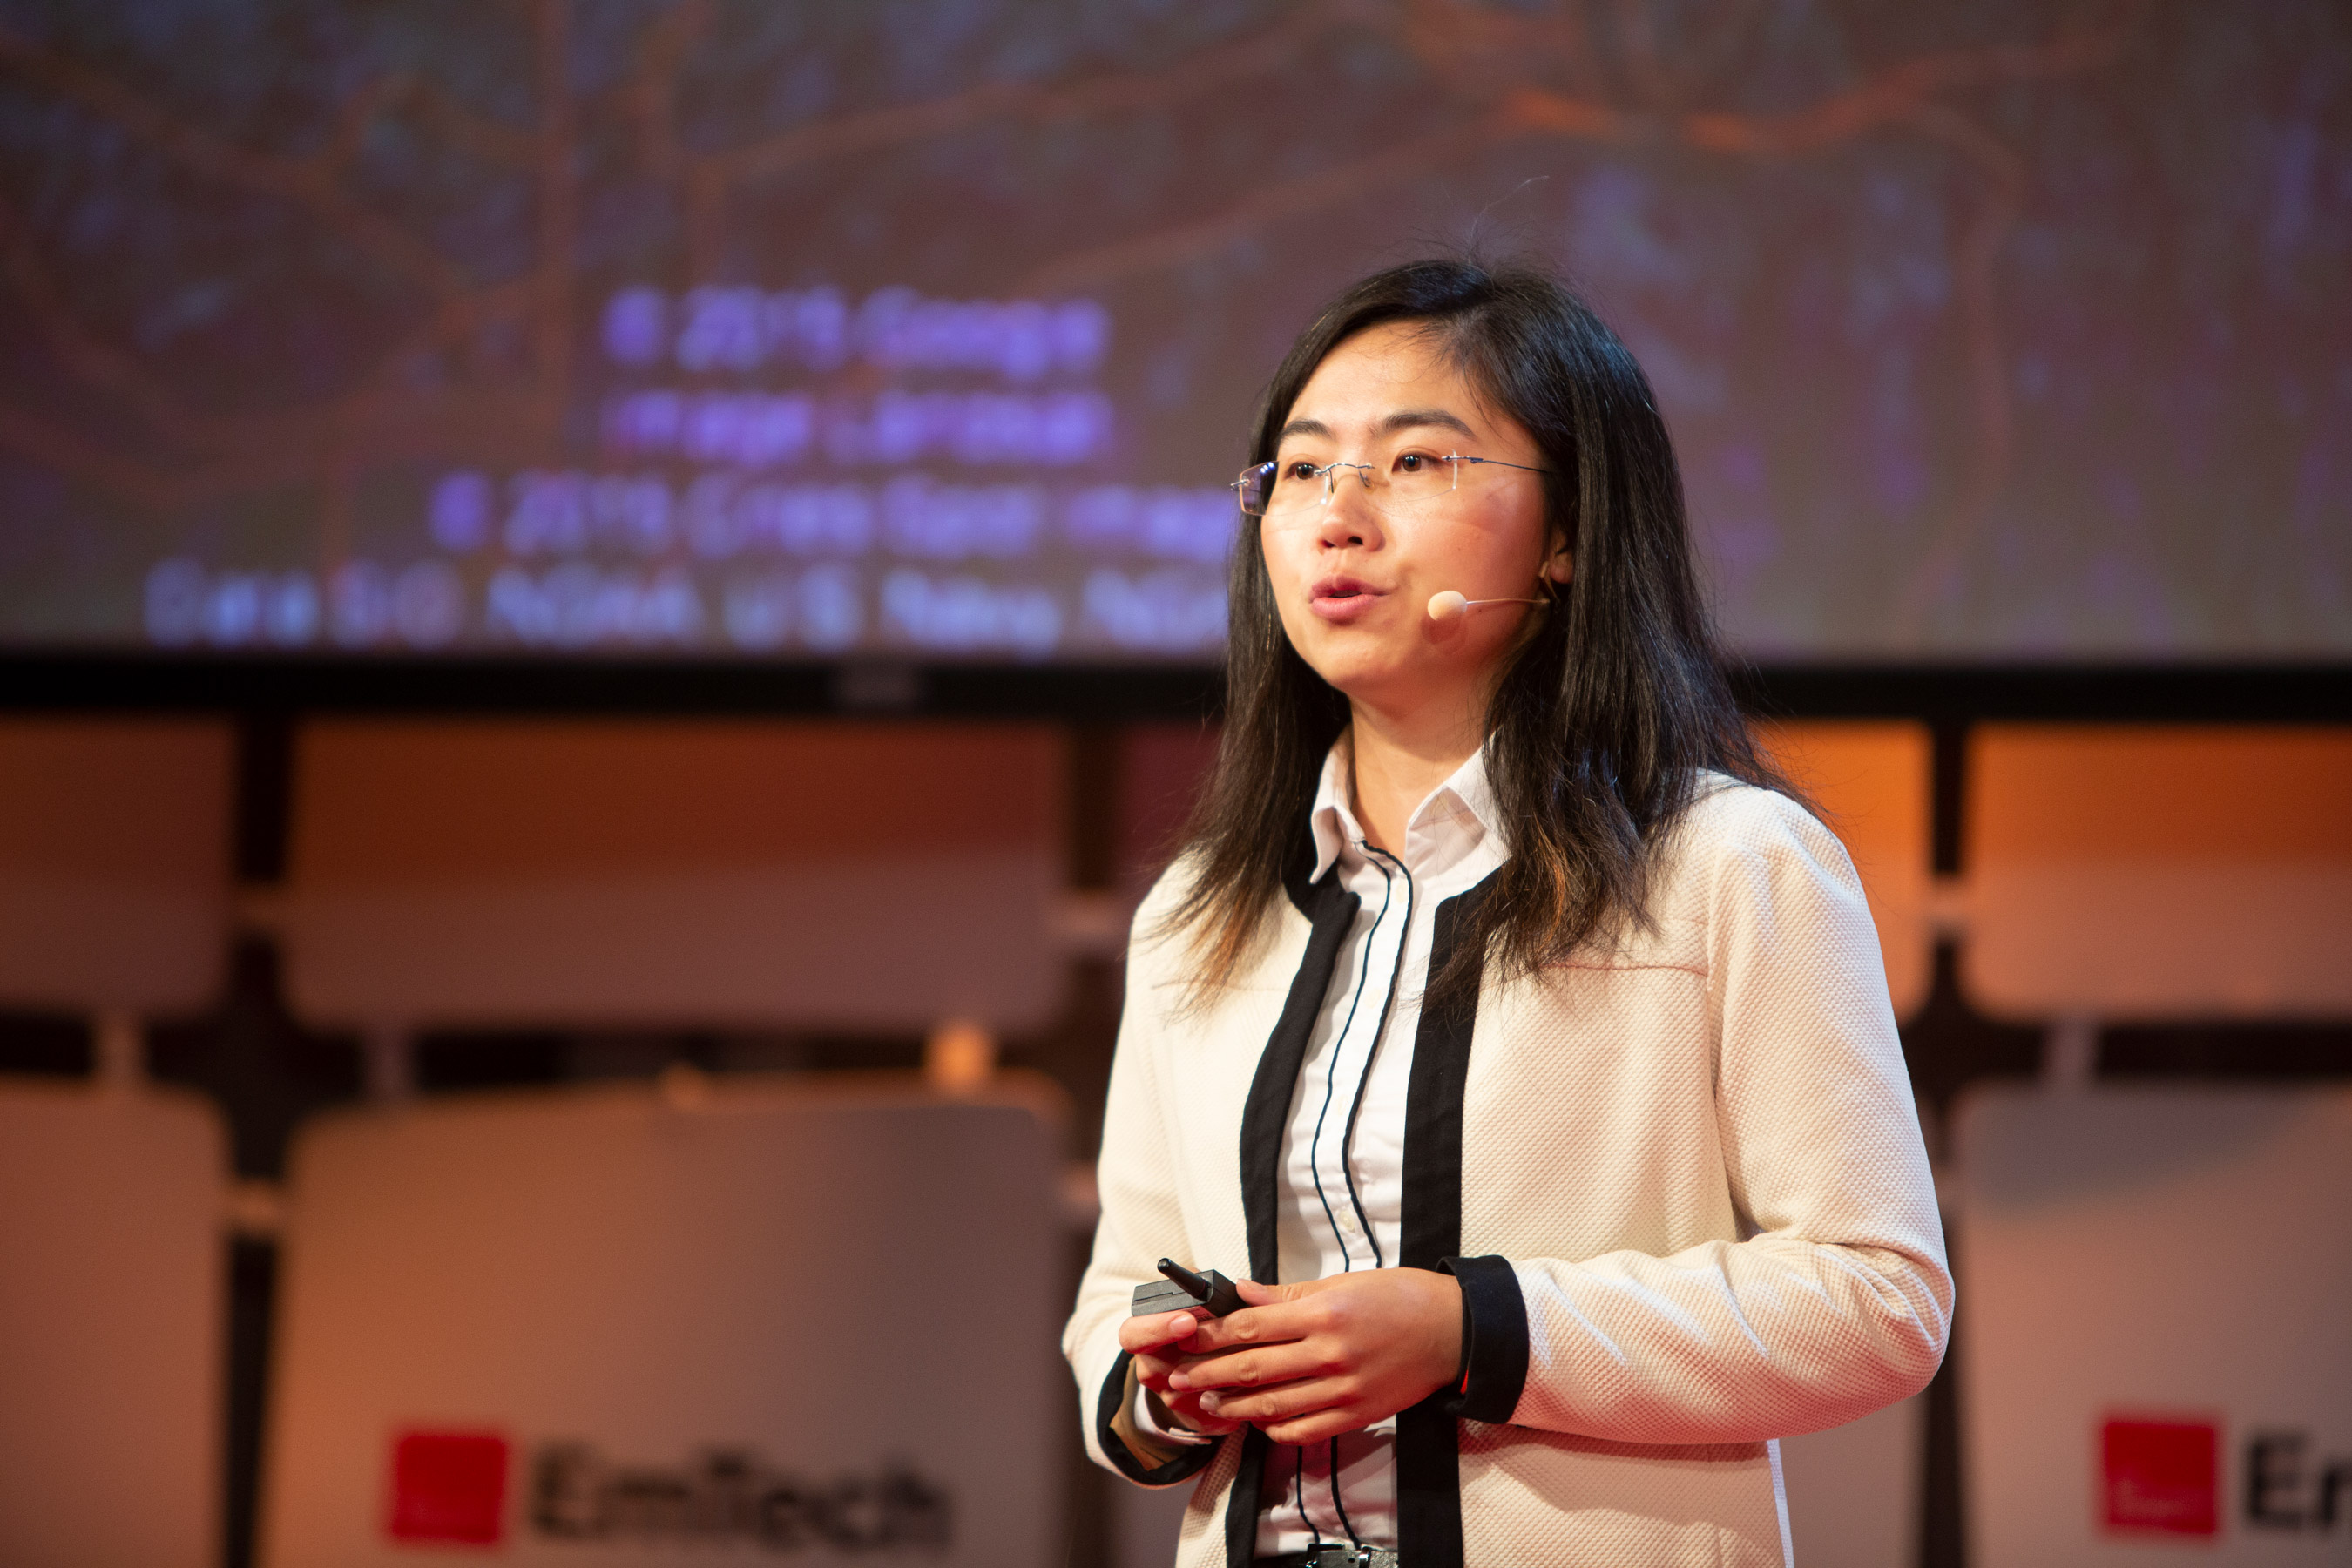 Photo of Fei Fang speaking at EmTech 2018